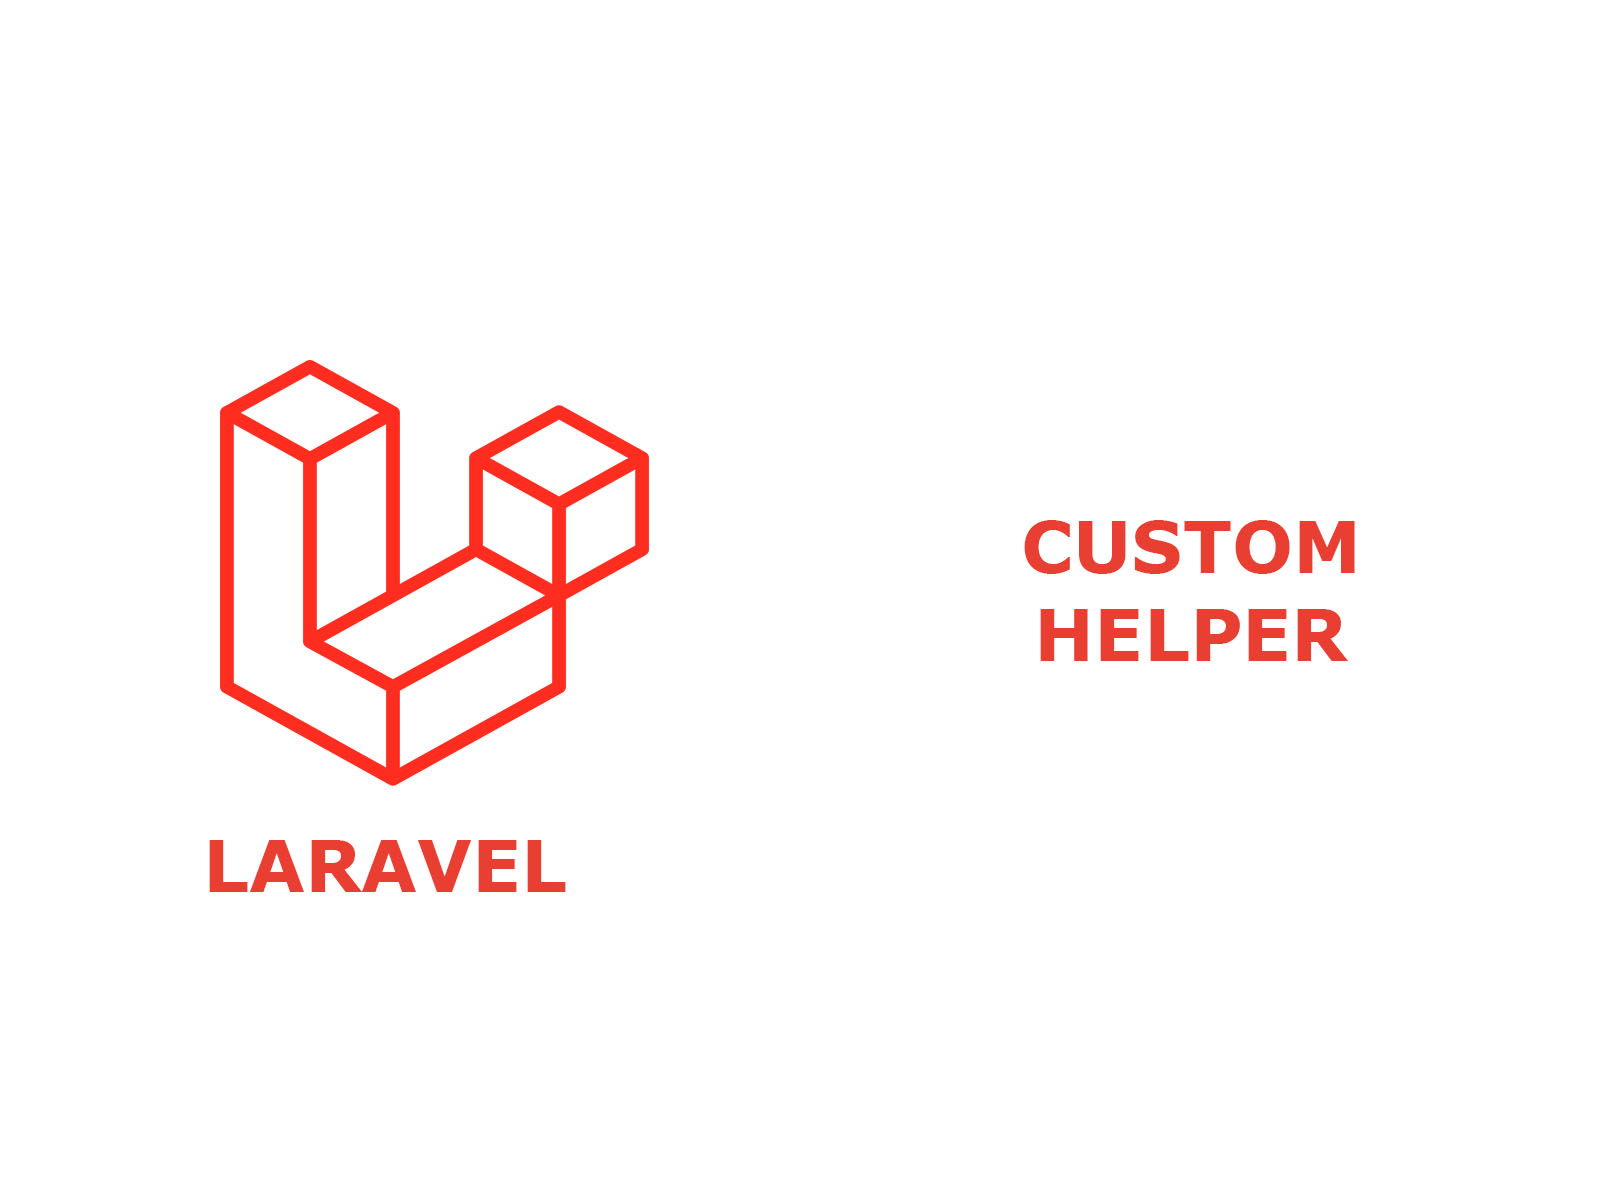 Custom Helper in laravel